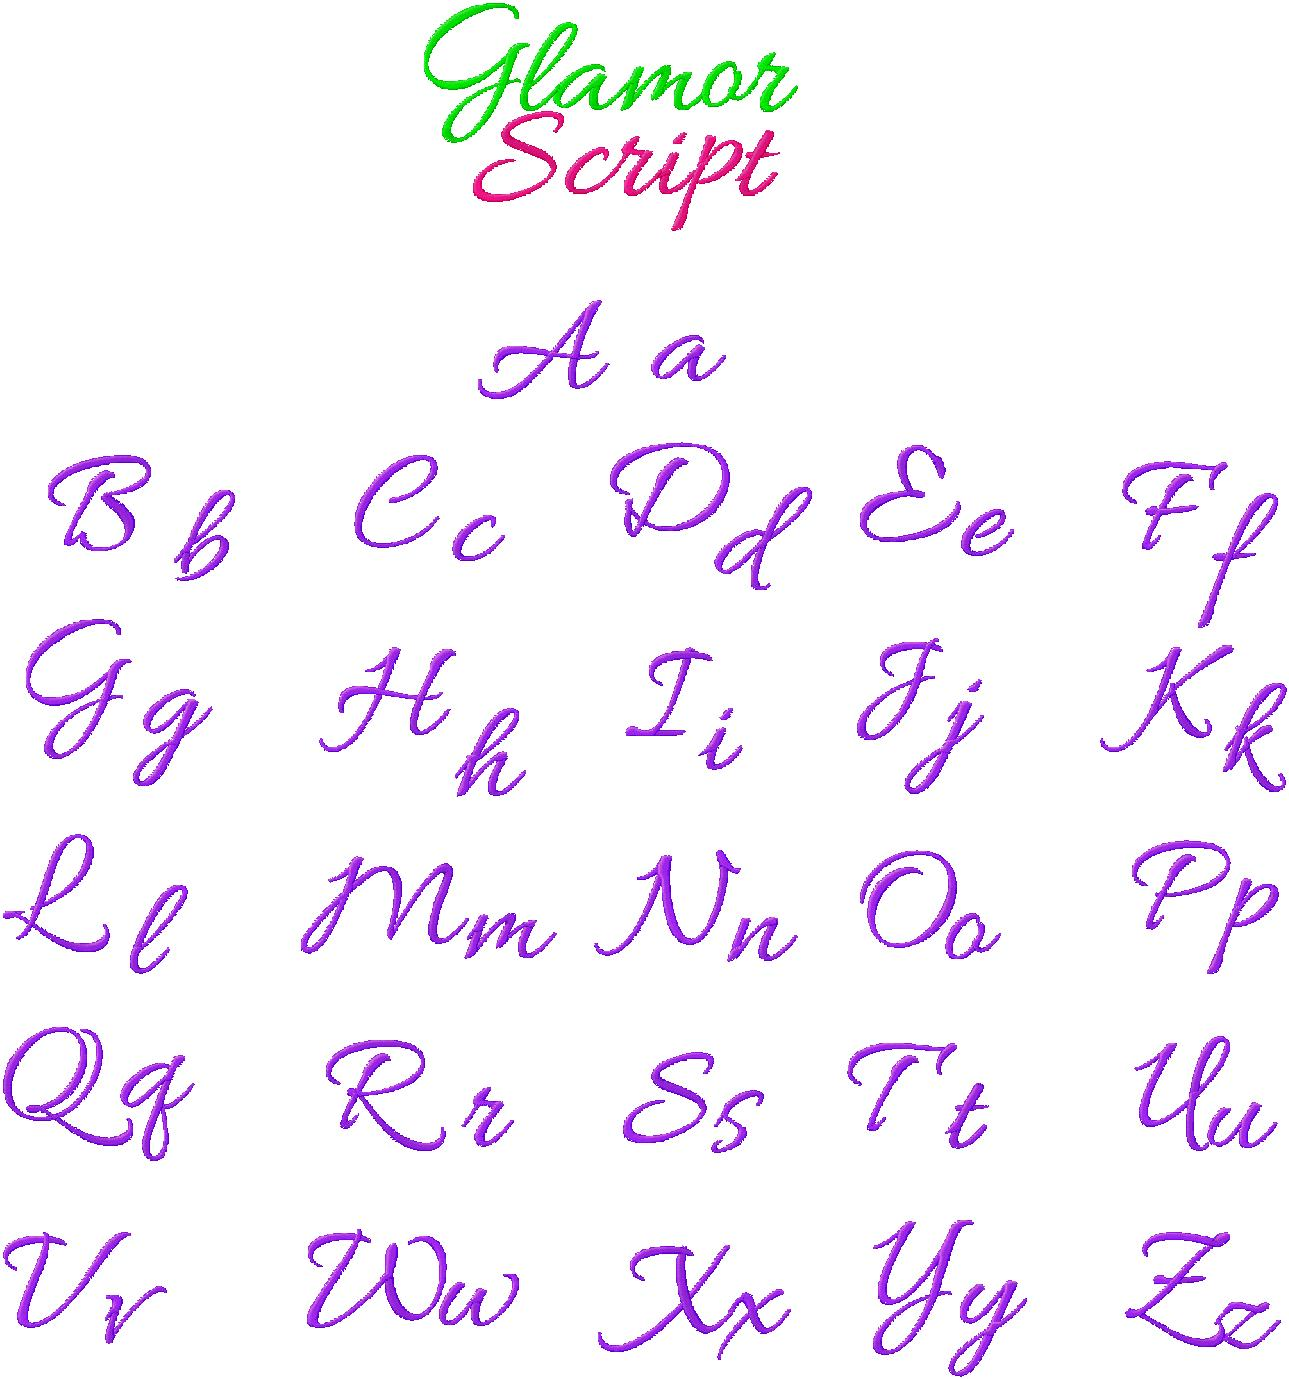 Free Cursive Embroidery Font Glamour Script Daily Embroidery